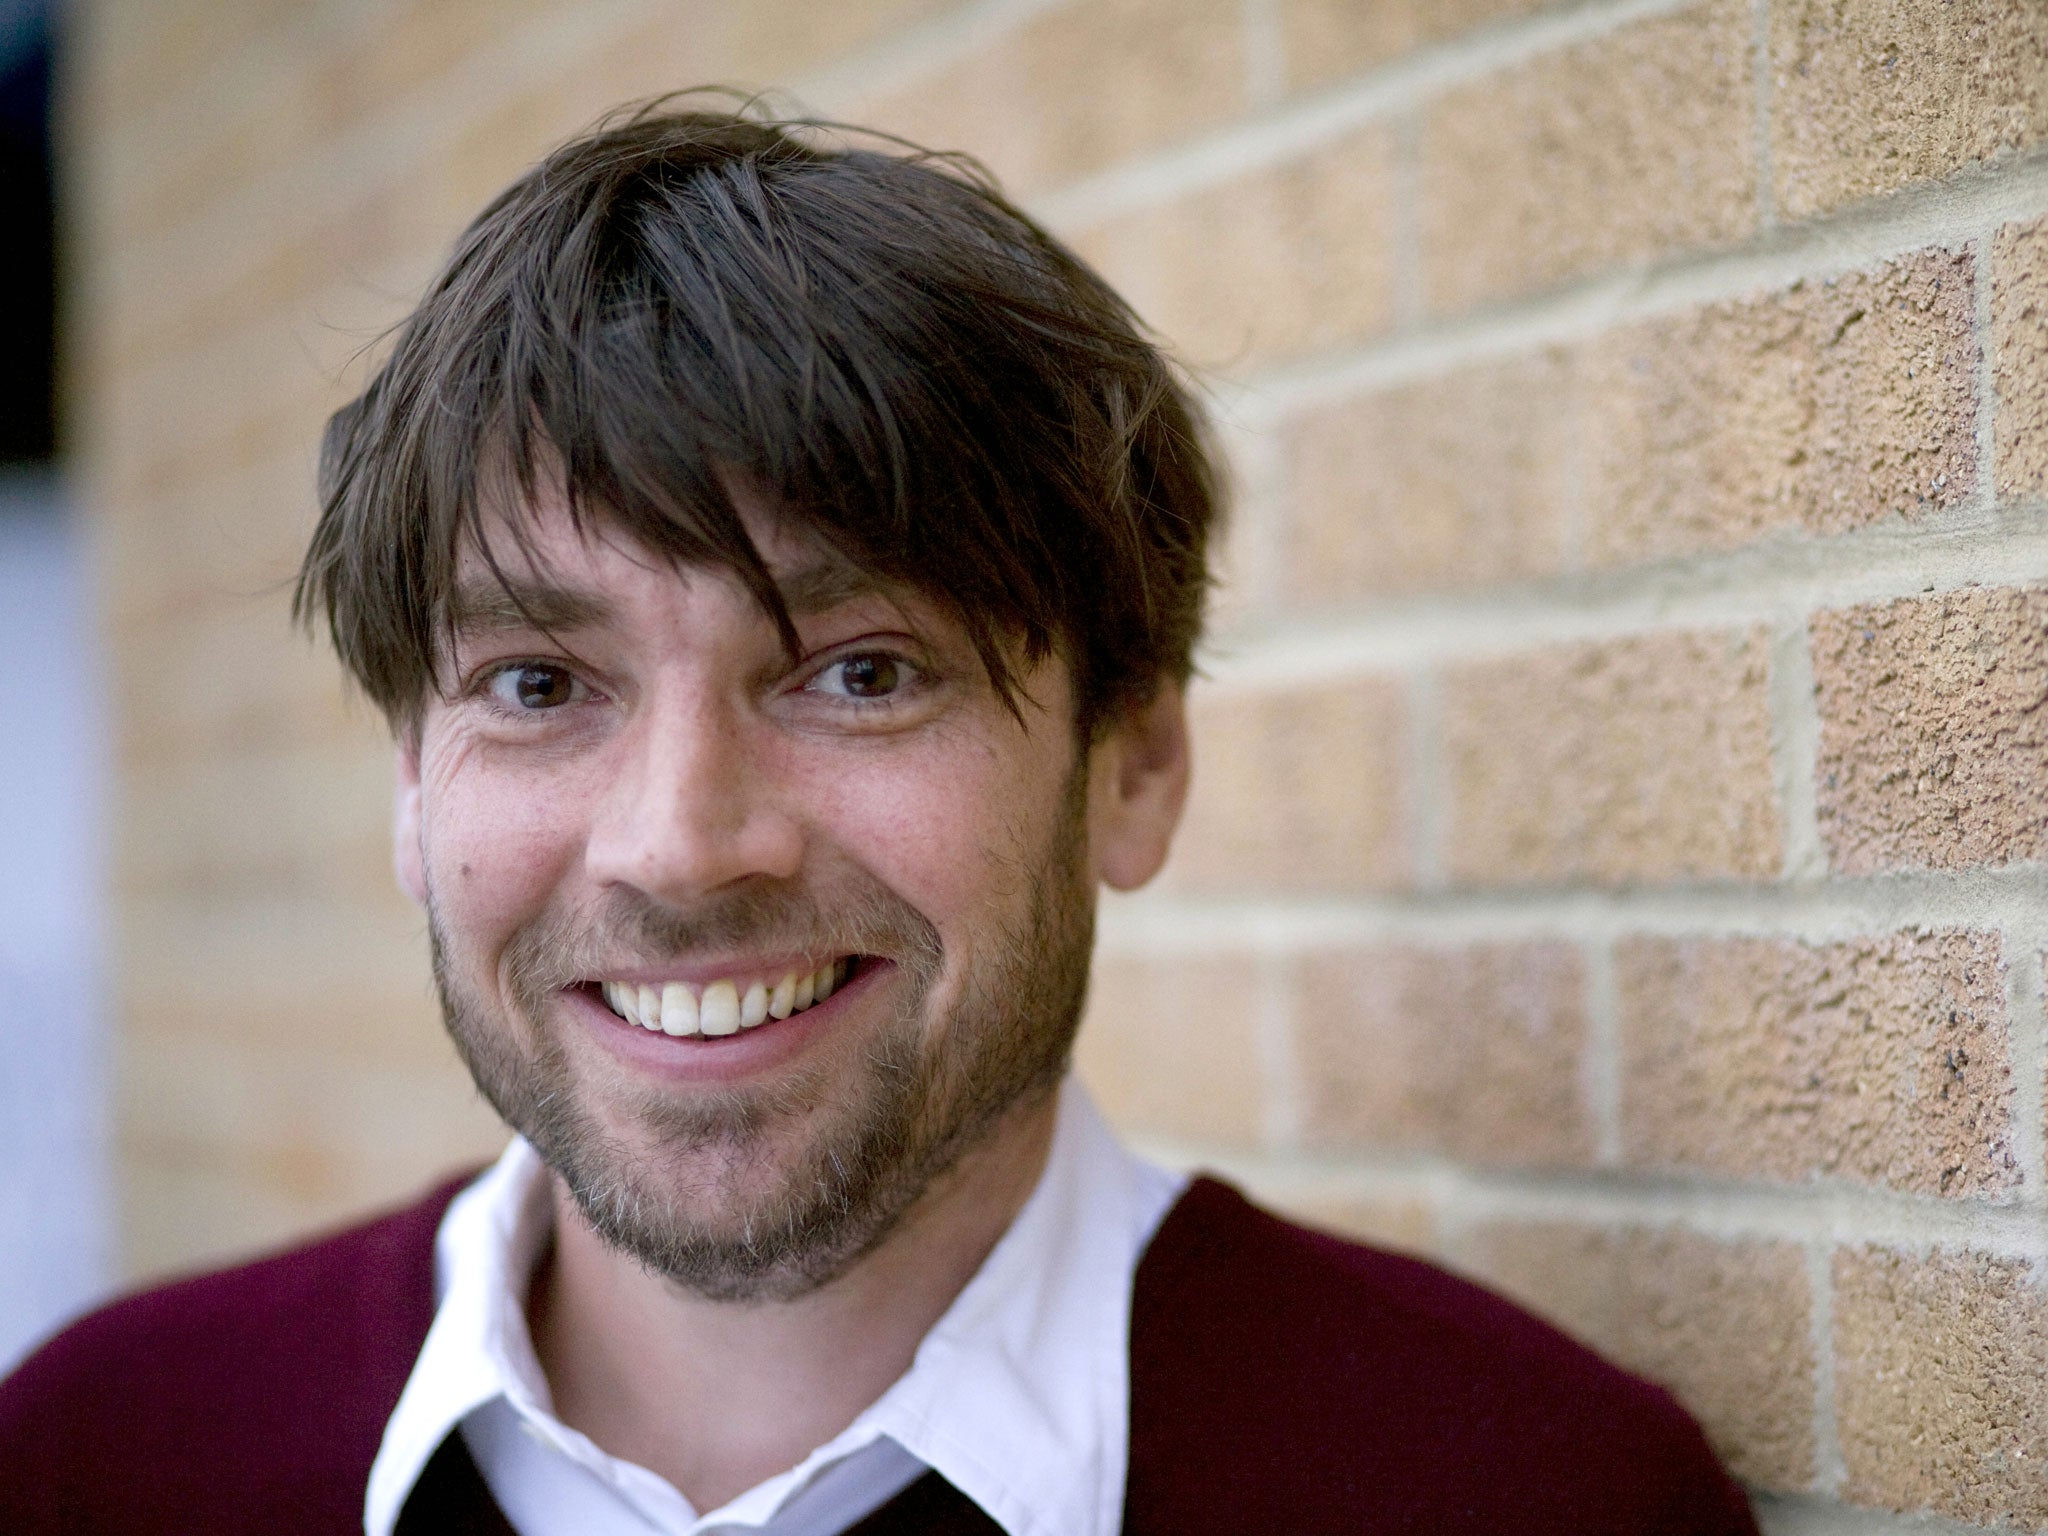 Alex James interview: Blur's bassist on the band's comeback, Oasis, and making cheese | Features | Culture | The Independent - AlexJames-RexFeatures